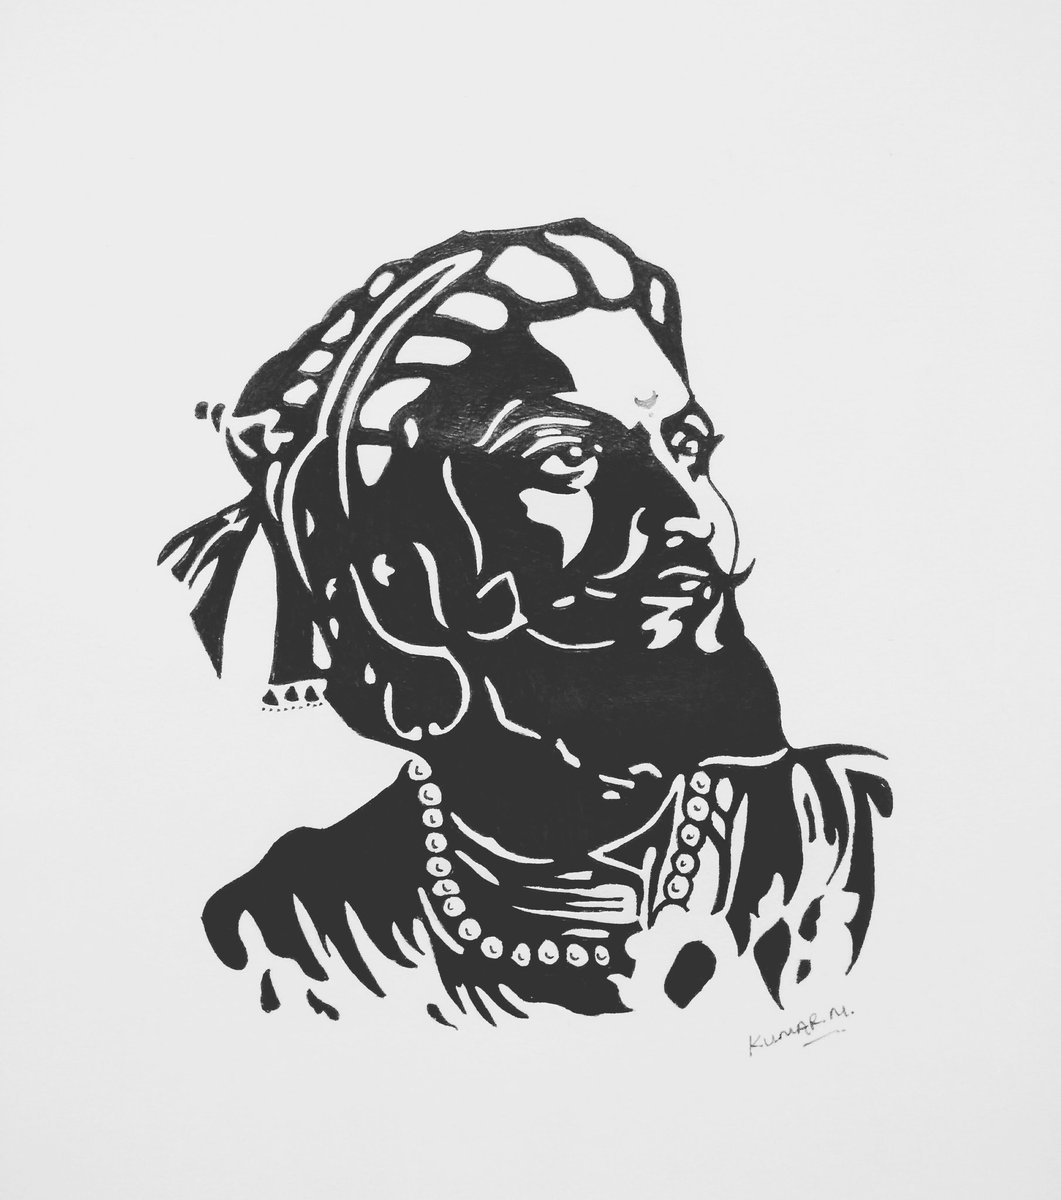 Byme blackpenwork trying shri chatrapati shivaji maharaj sketch art chatrapatishivajimaharaj kumarmsketch